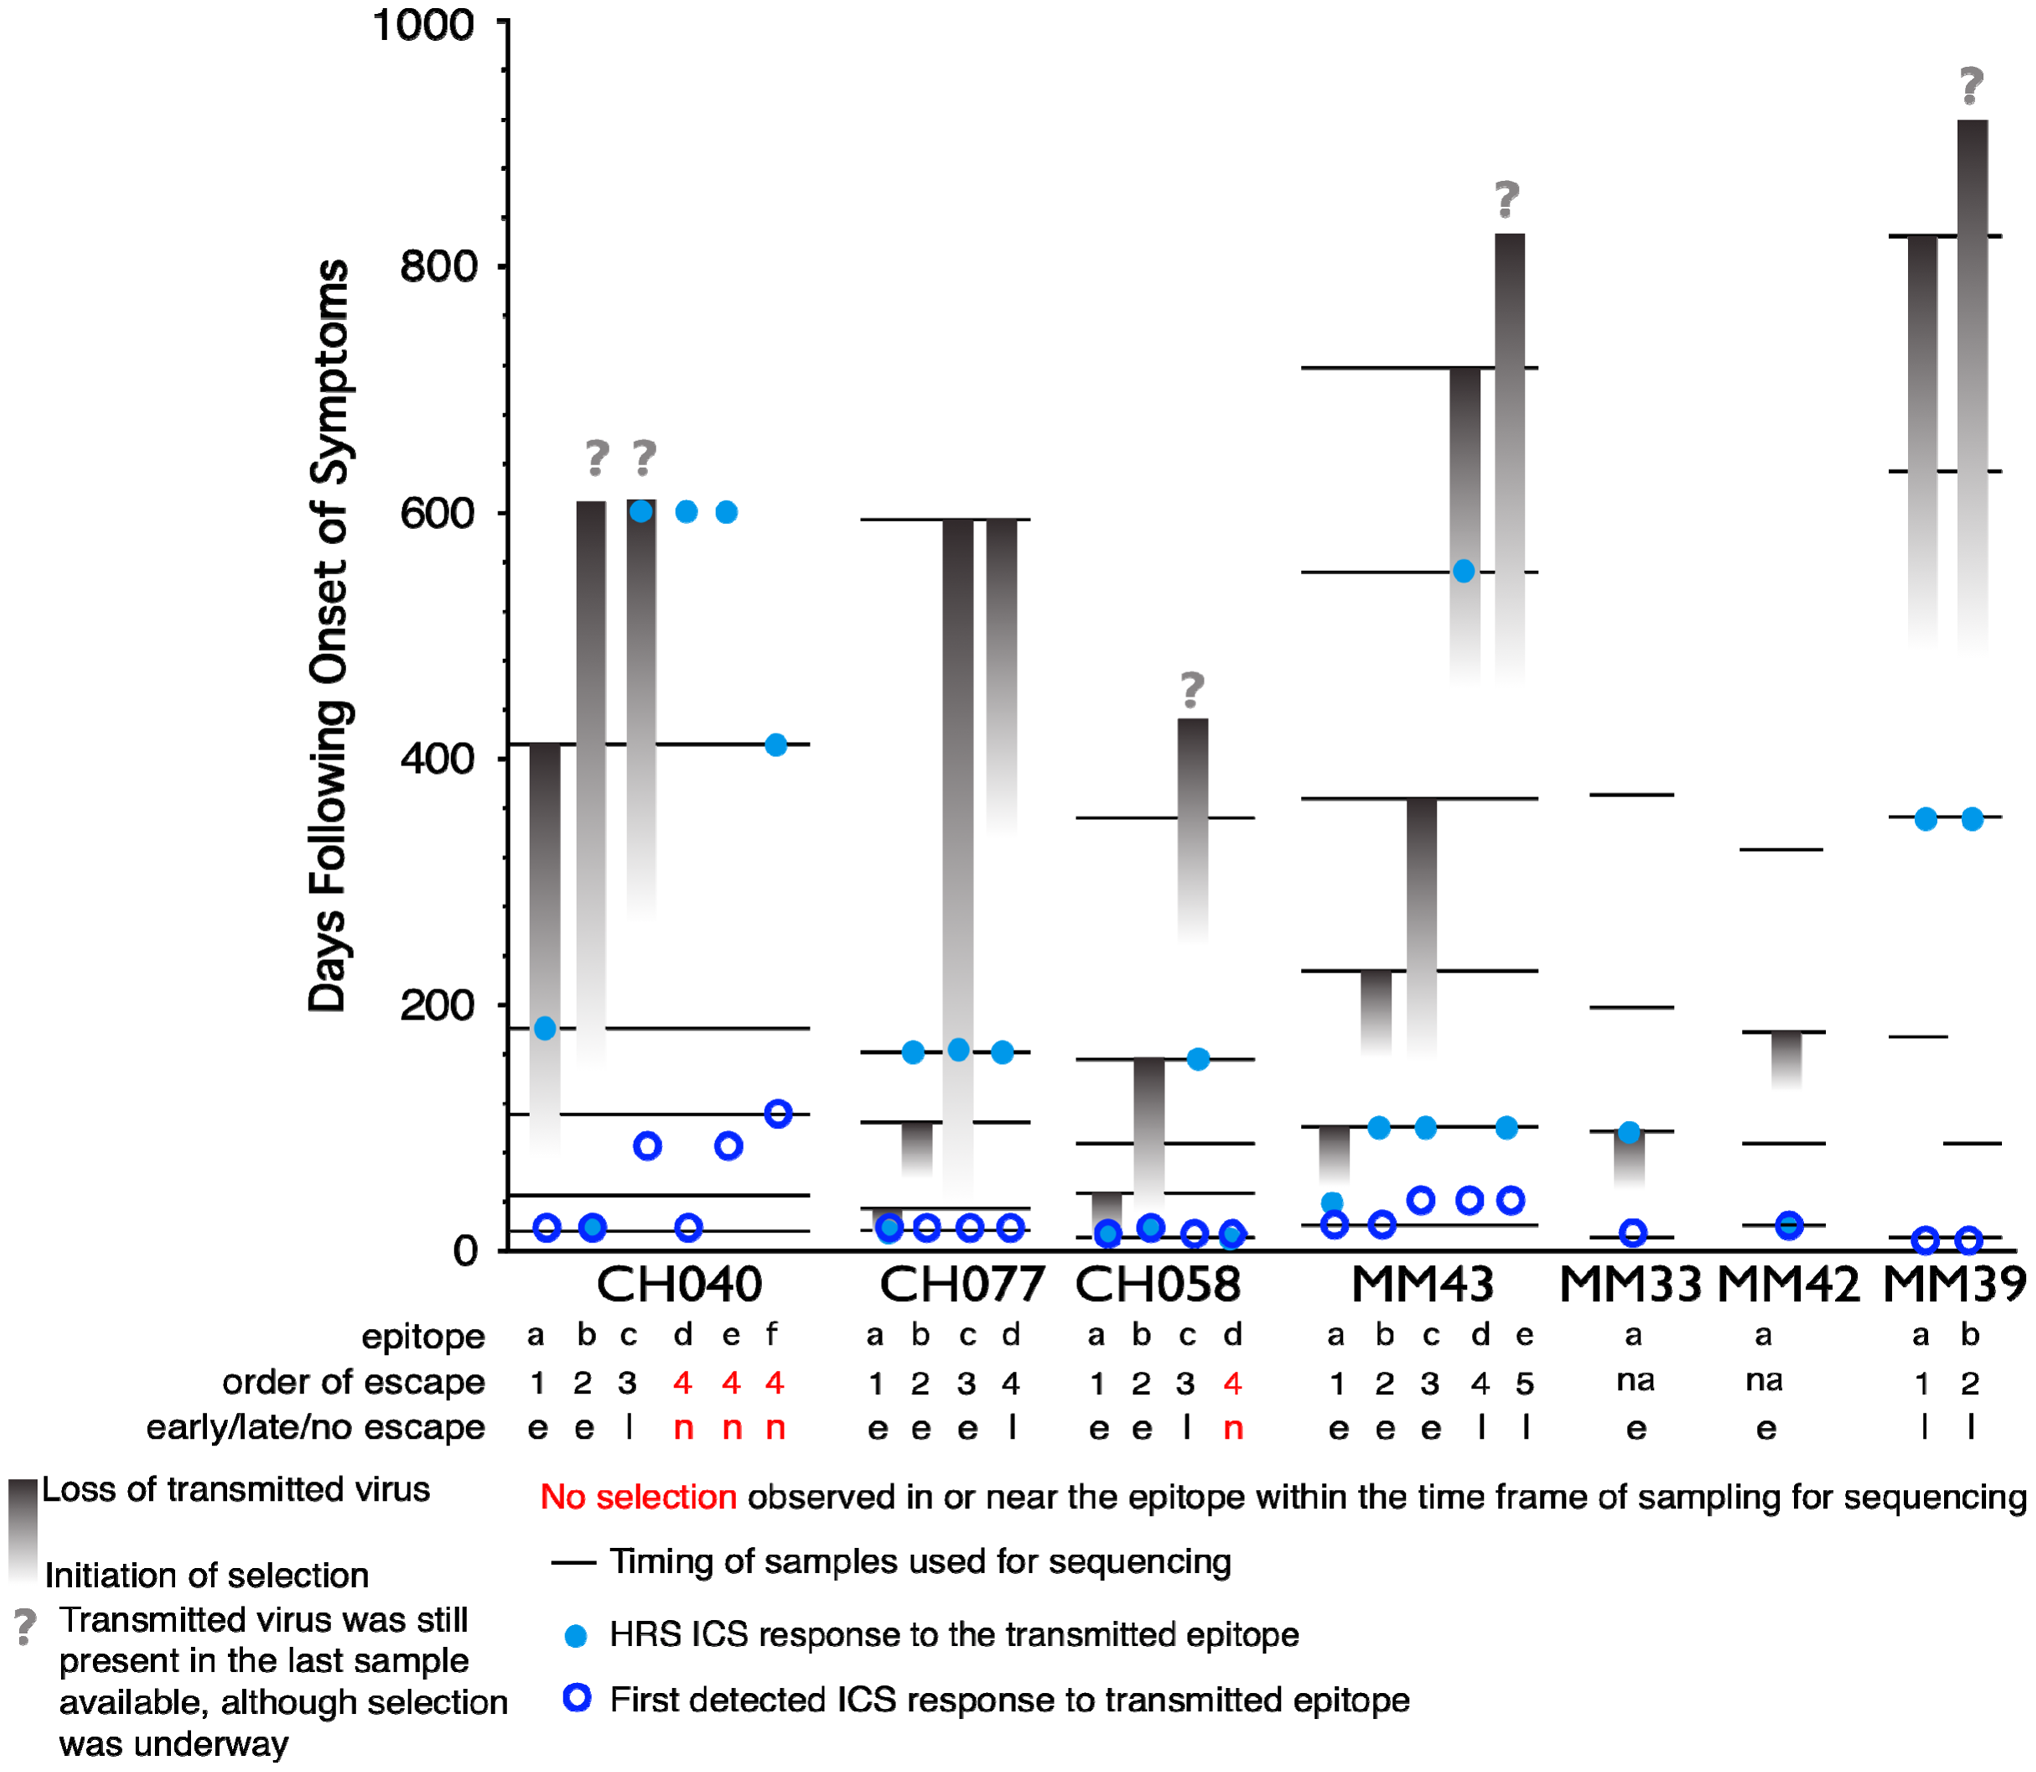 Timing of escape of each epitope relative to the first CD8+ T-cell responses.